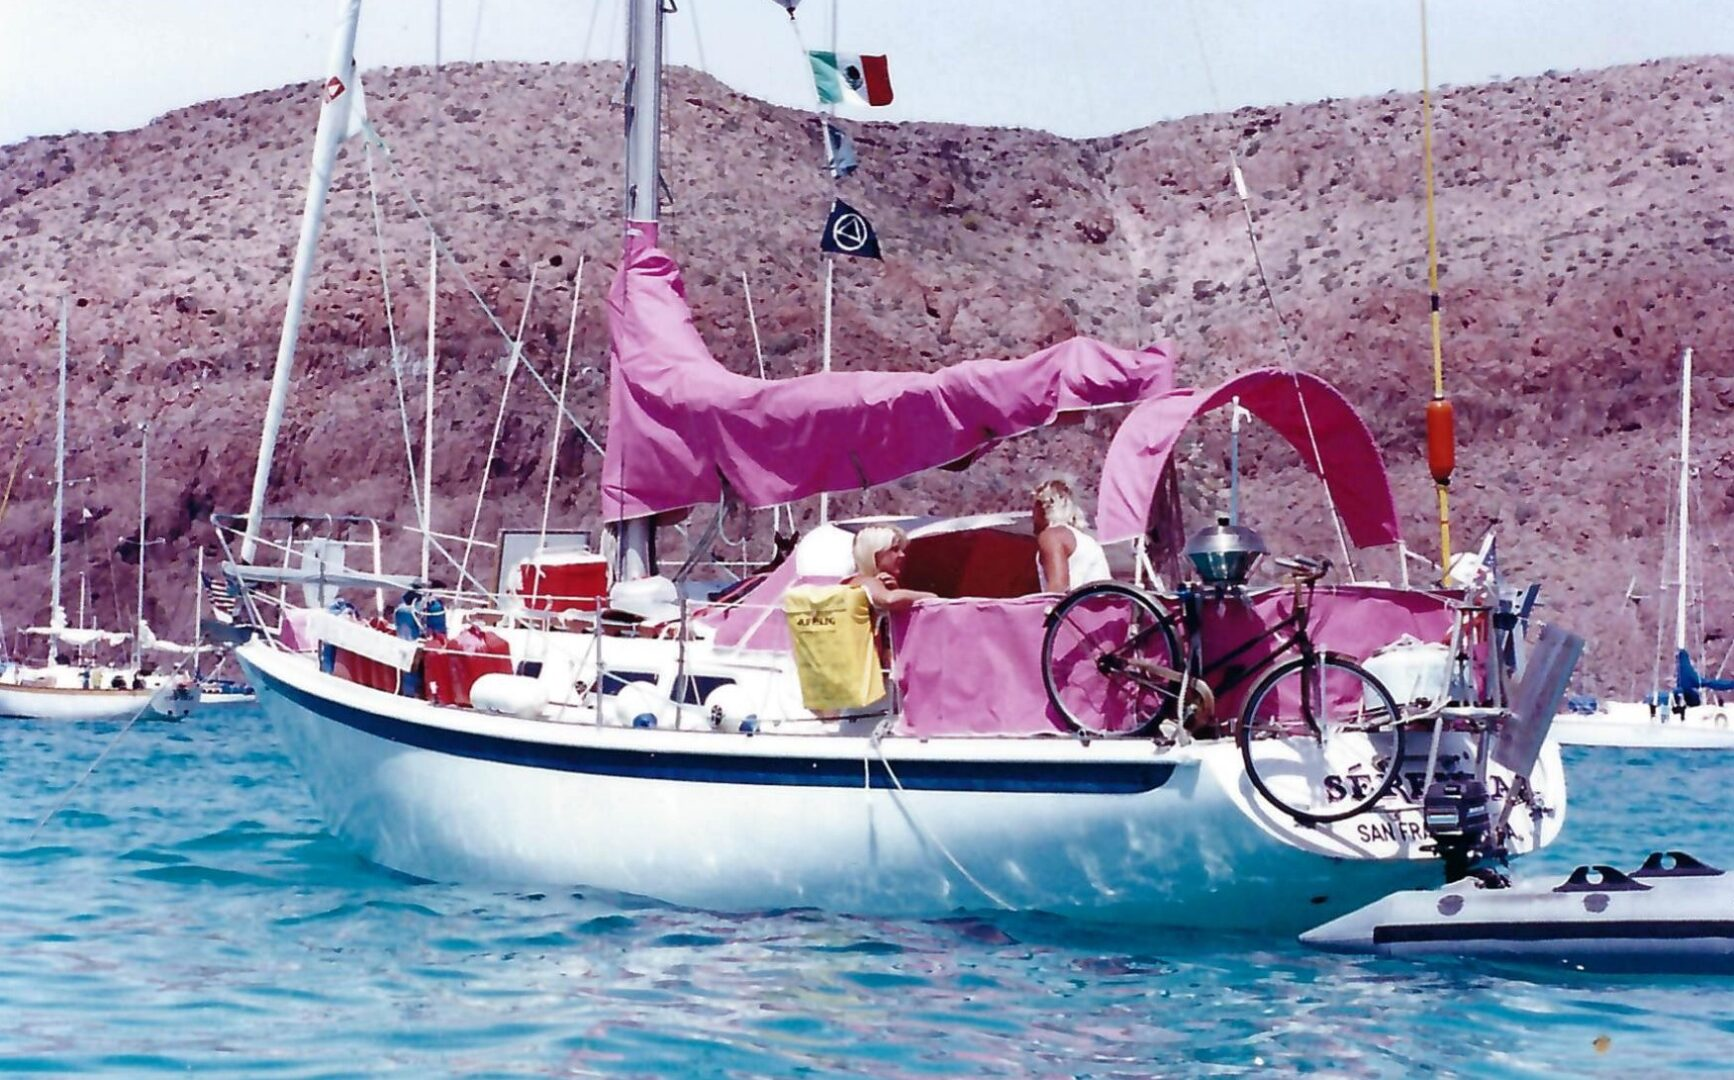 Sérenta (in foreground) on anchor in the Sea of Cortez